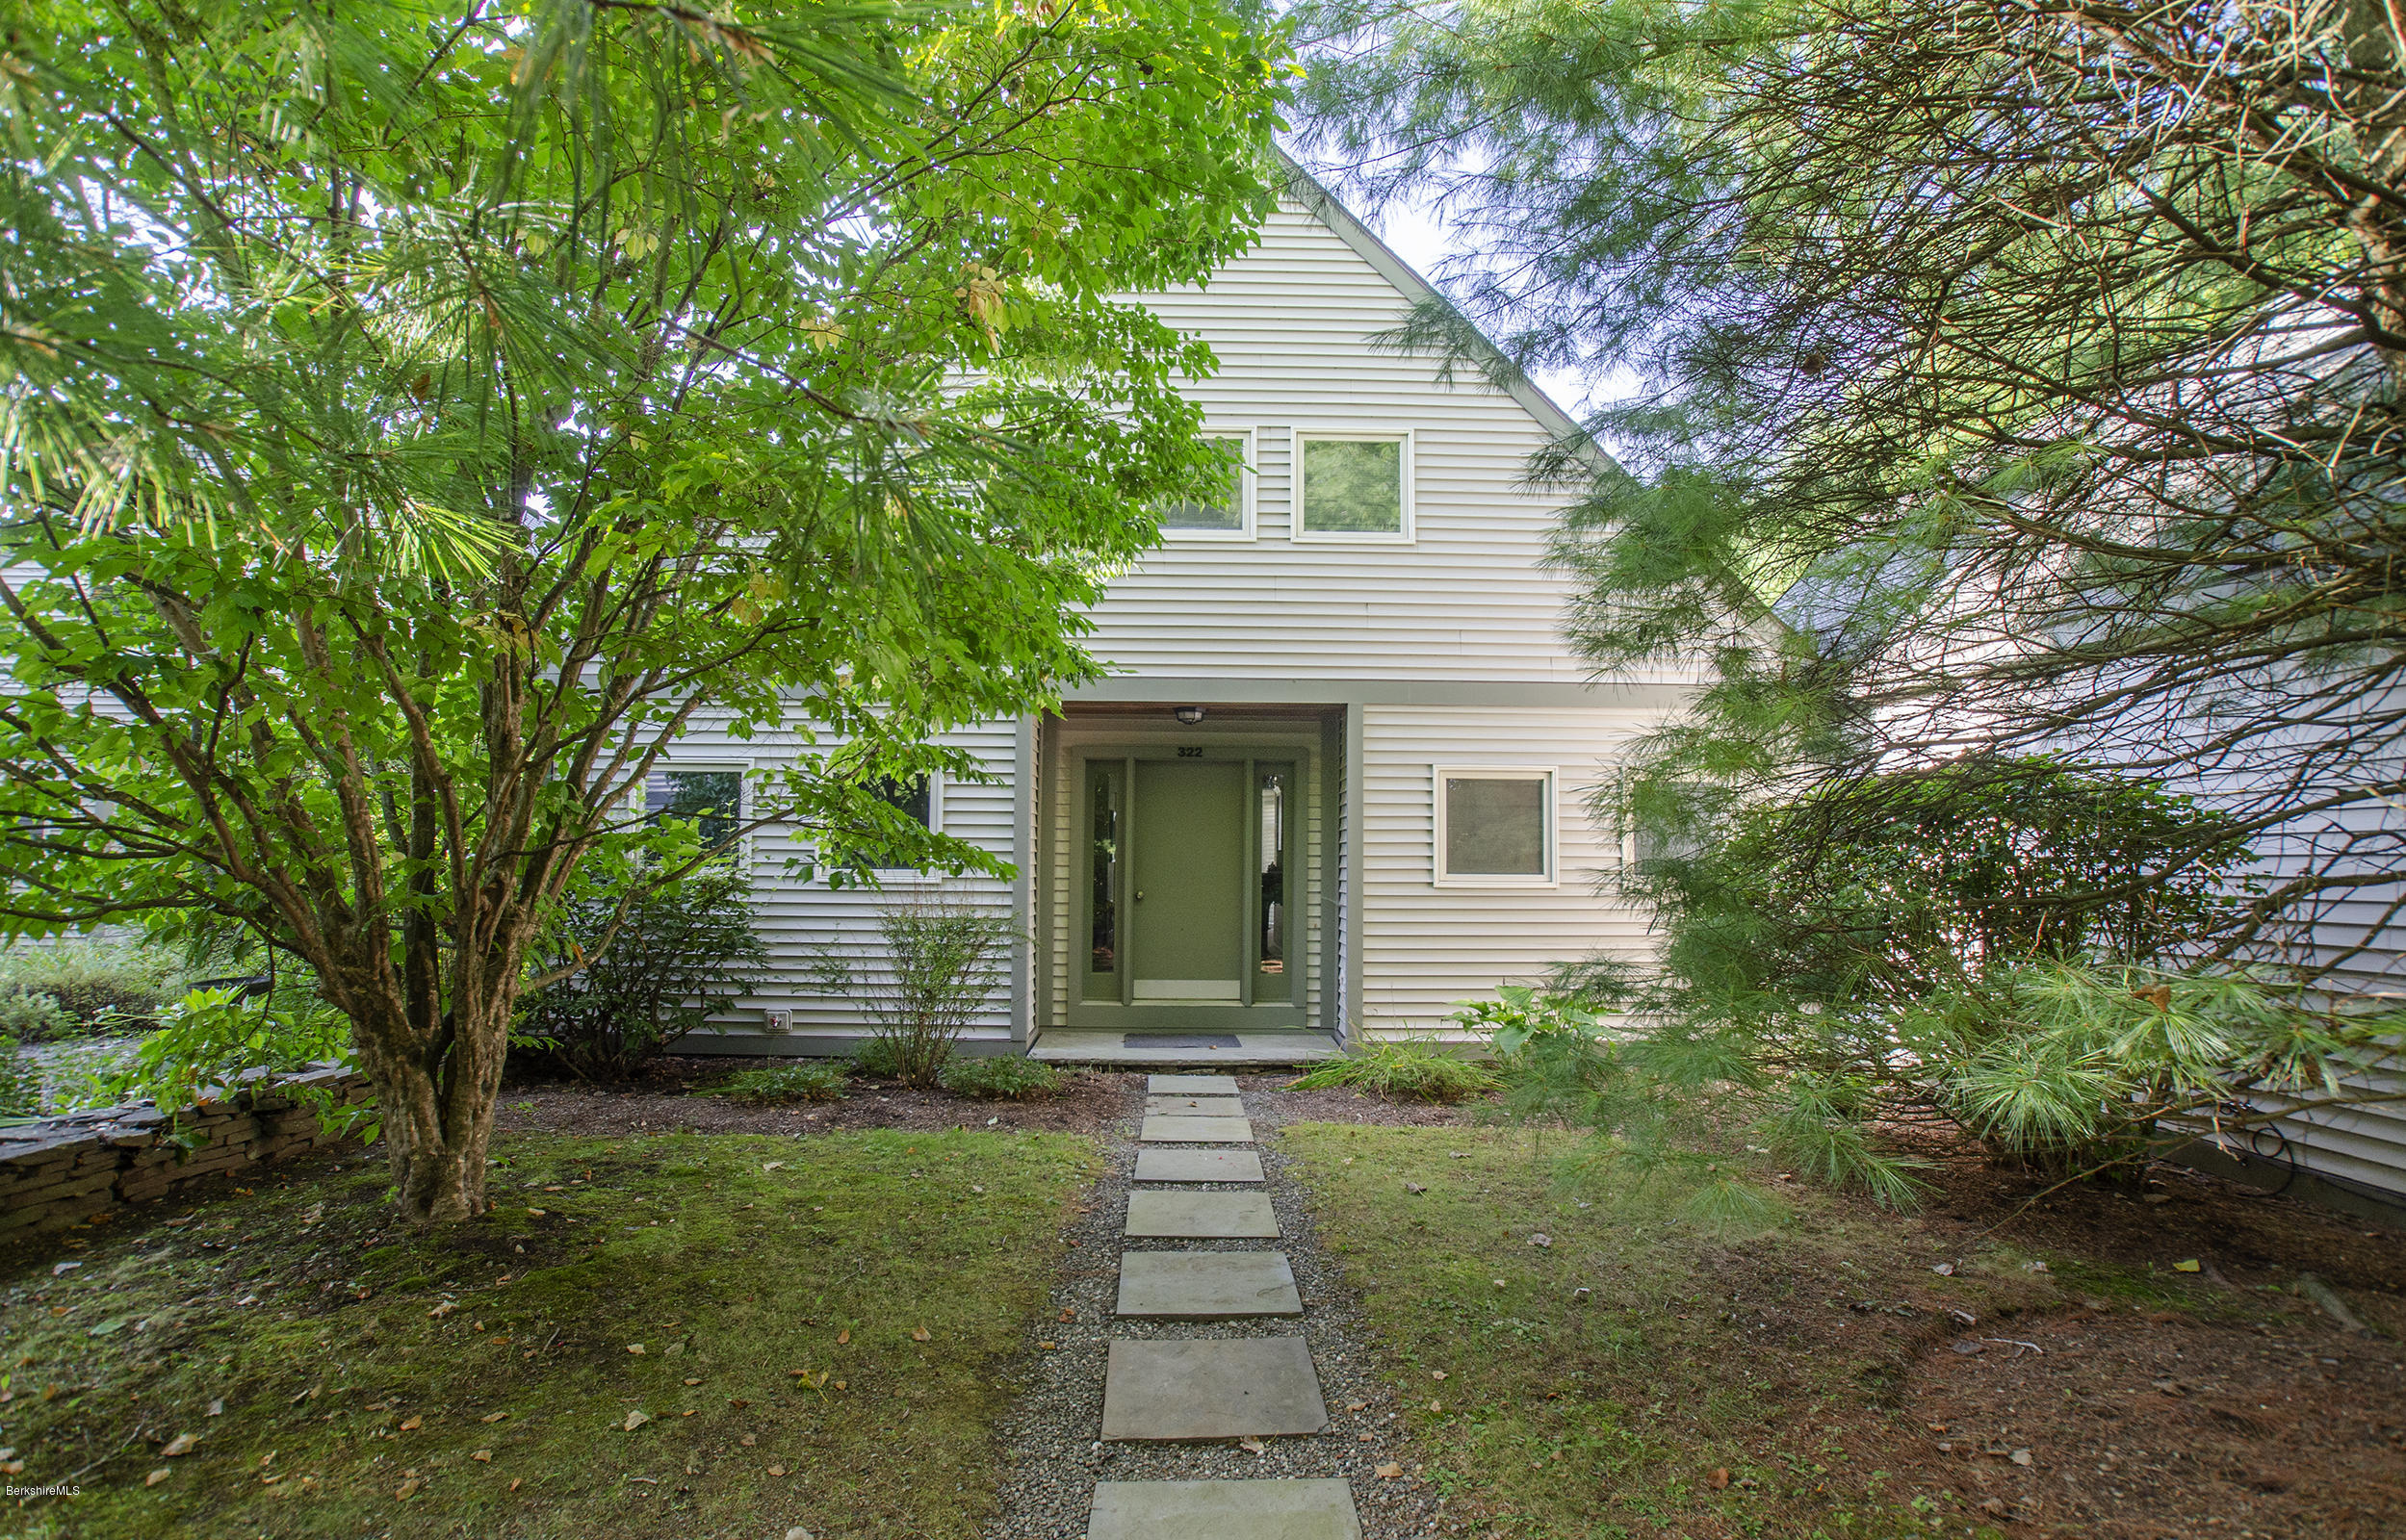 322 Arcadia, Ancram, New York 12502, 3 Bedrooms Bedrooms, 10 Rooms Rooms,4 BathroomsBathrooms,Residential,For Sale,Arcadia,232310